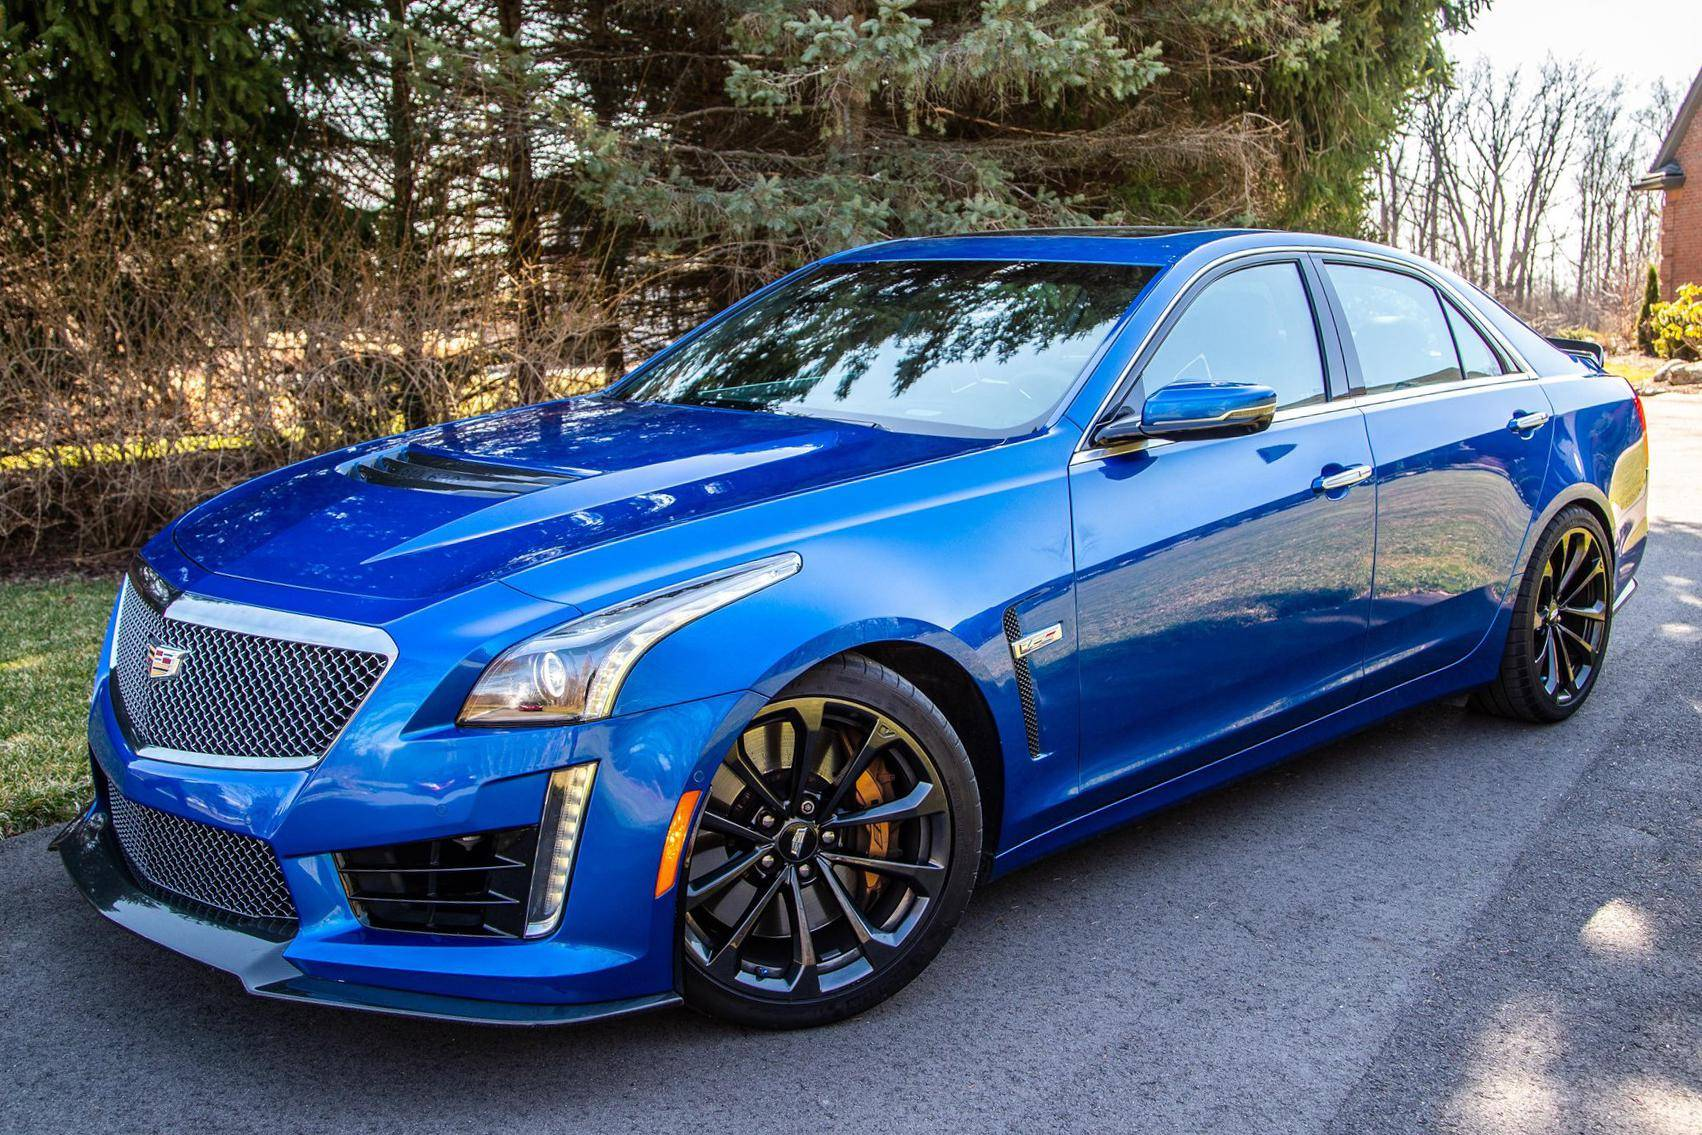 40 Cadillac CTS V Sedan auction   Cars & Bids